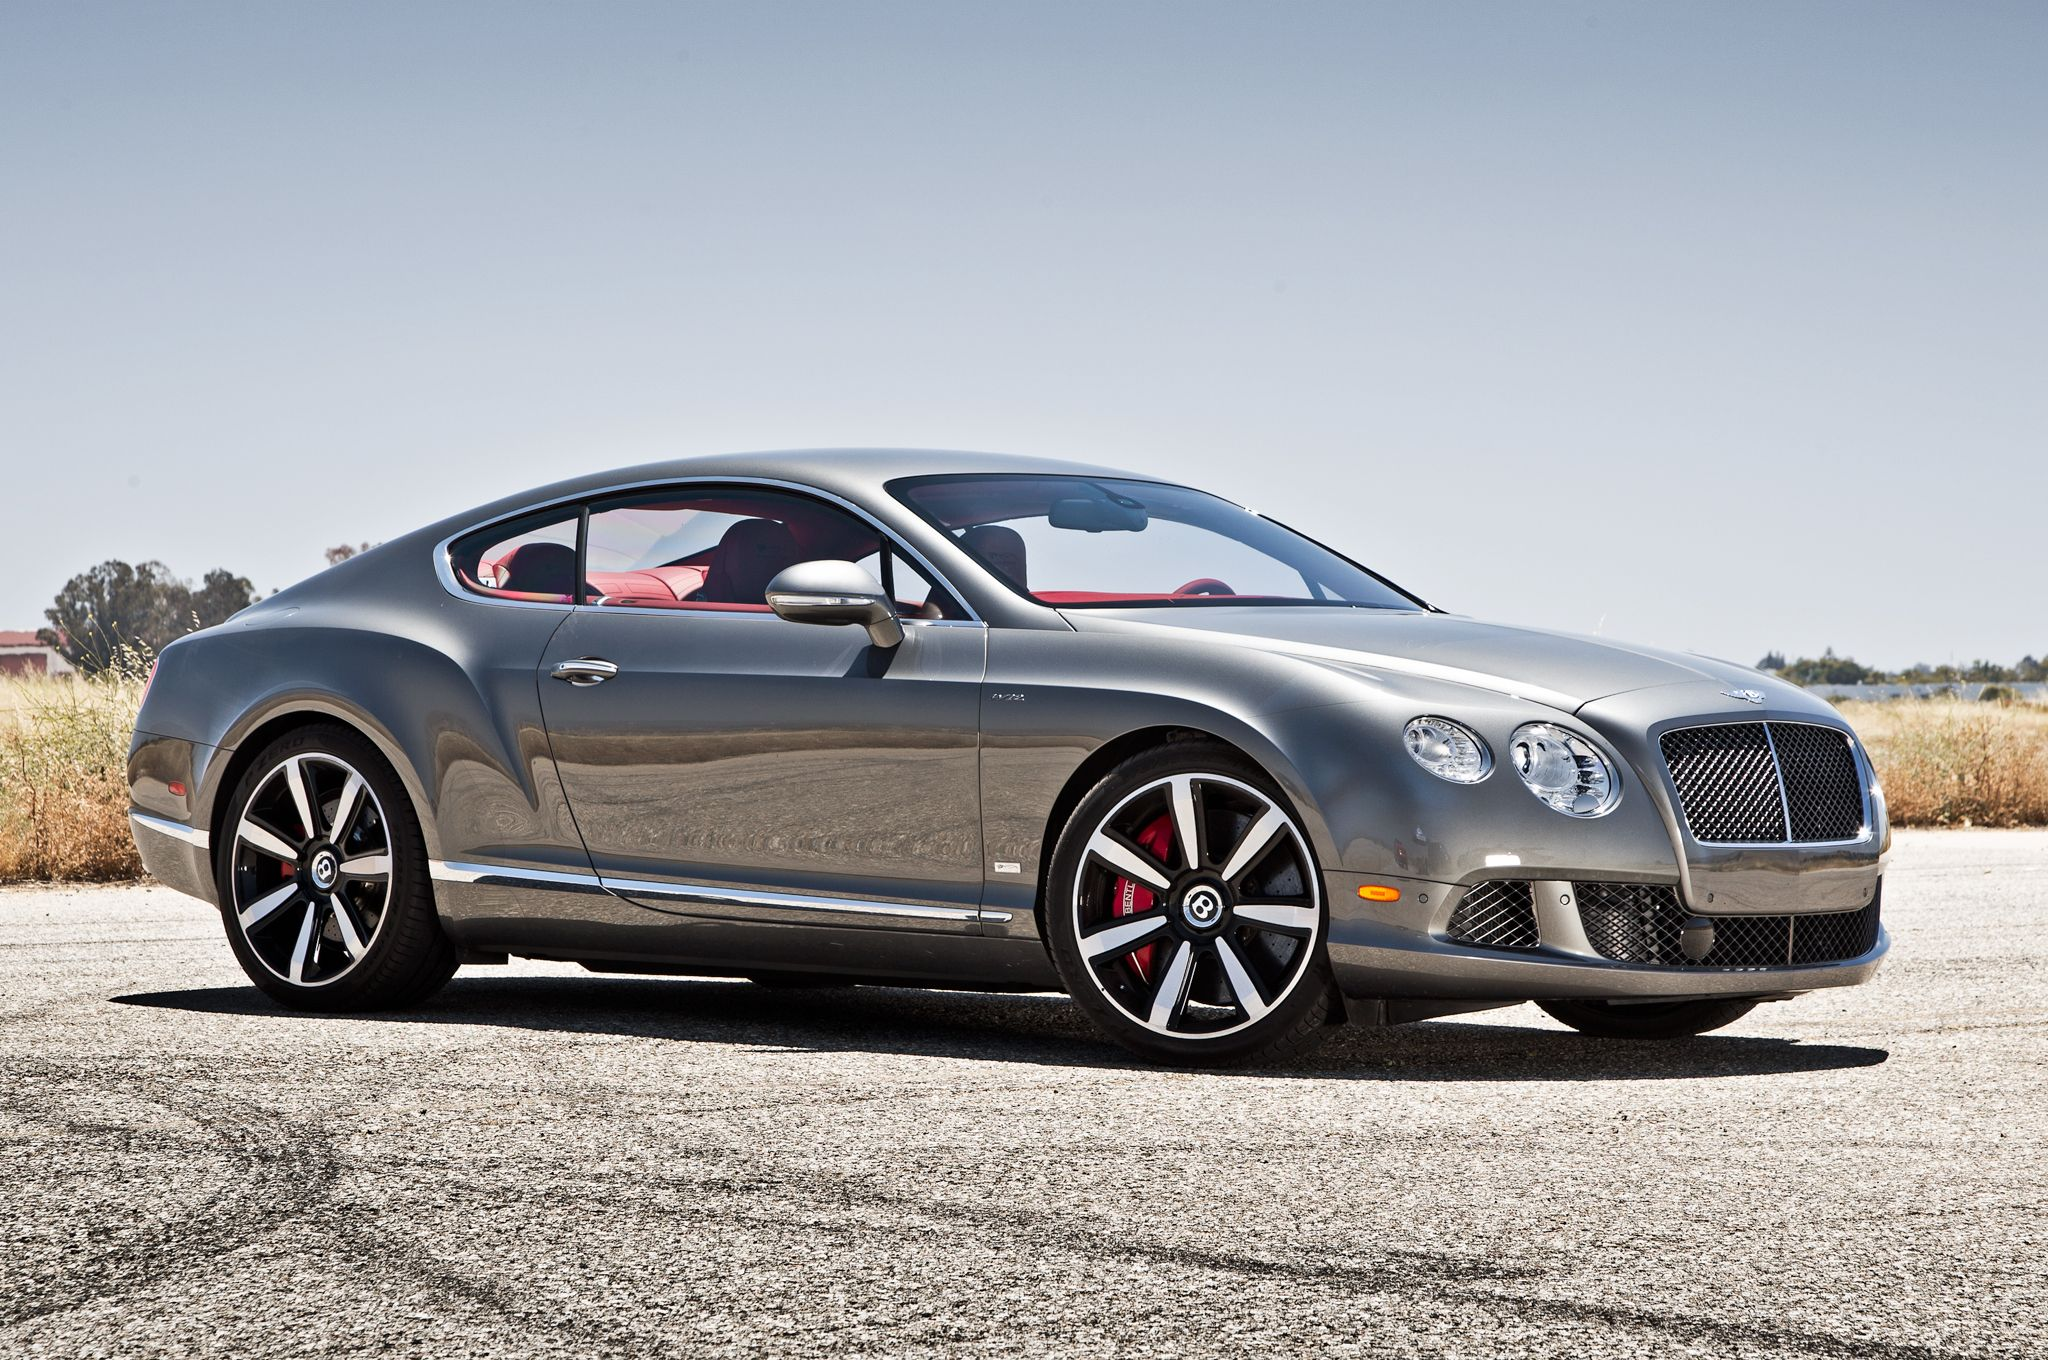 Bentley Continental GT Speed   10 Sports Cars Transformed Into Pickup  Trucks Best Of Web Shrine